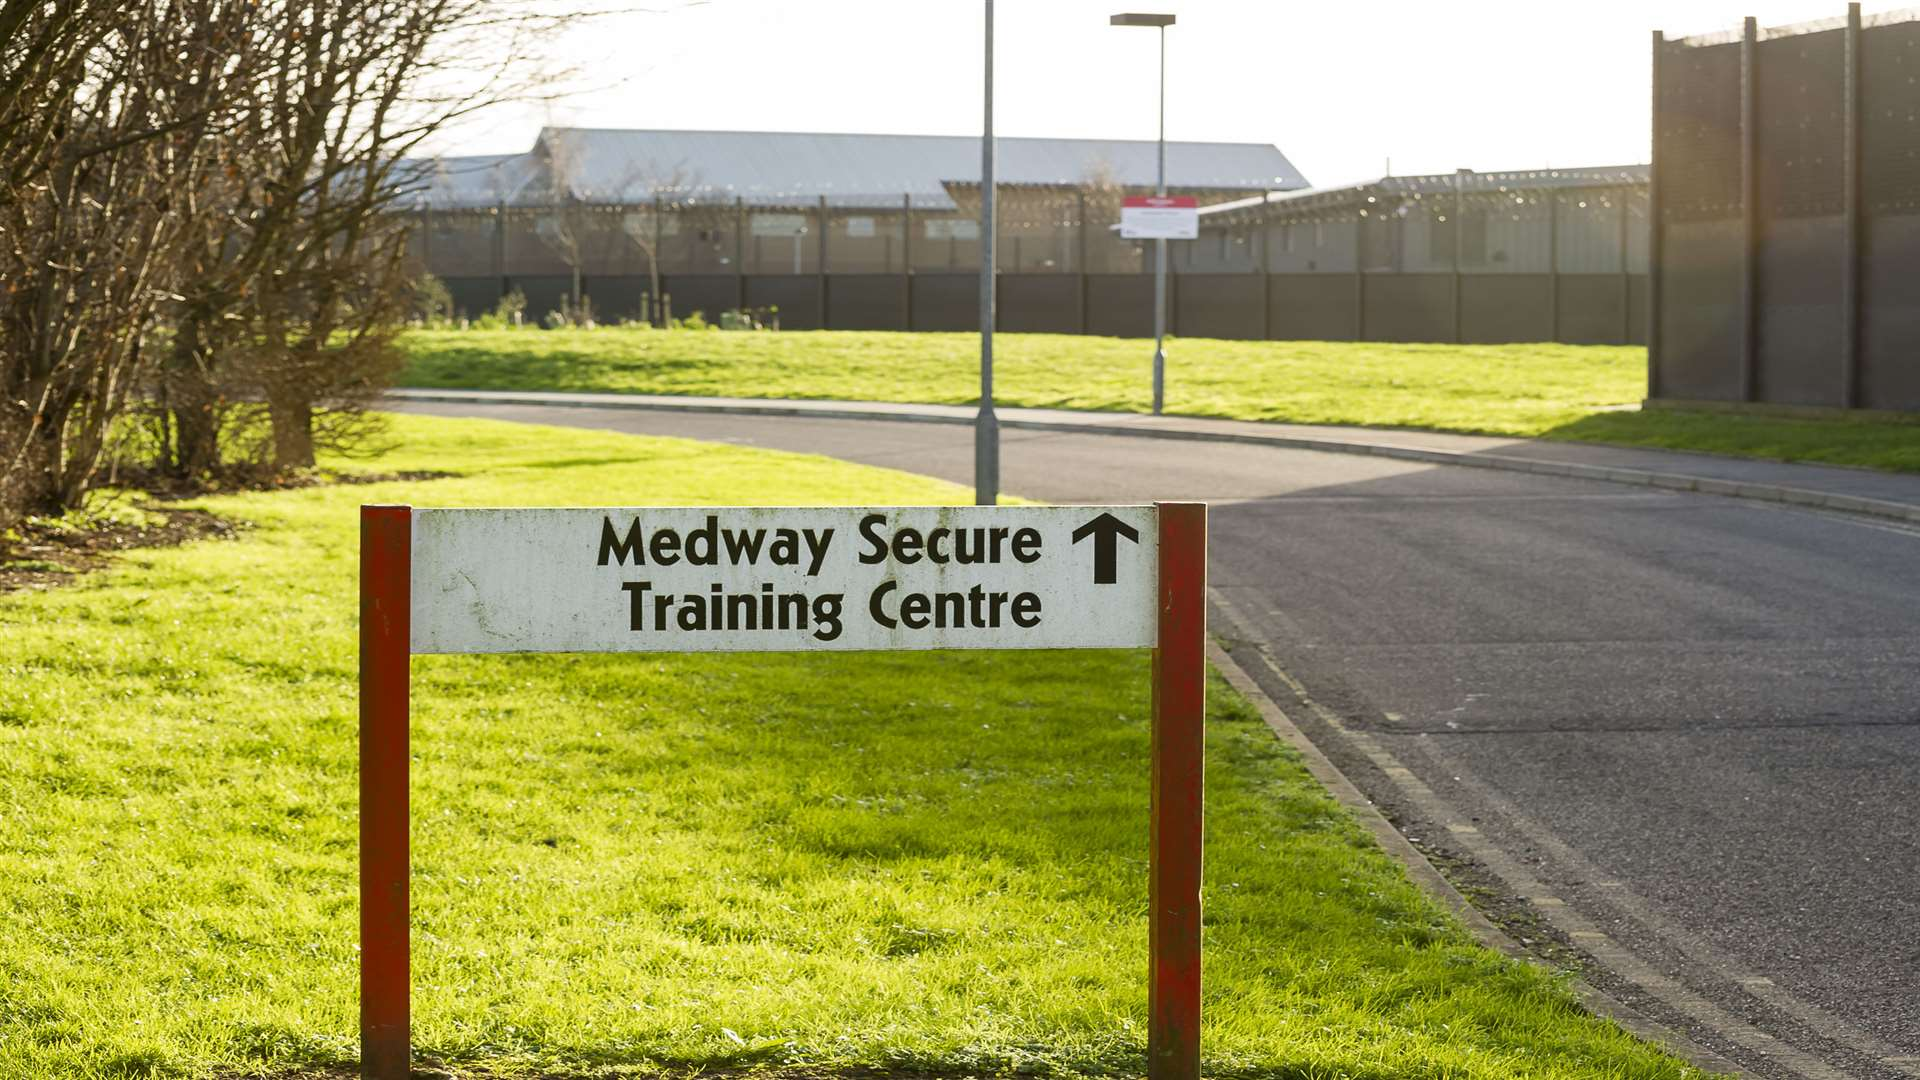 Medway Secure Training Centre.